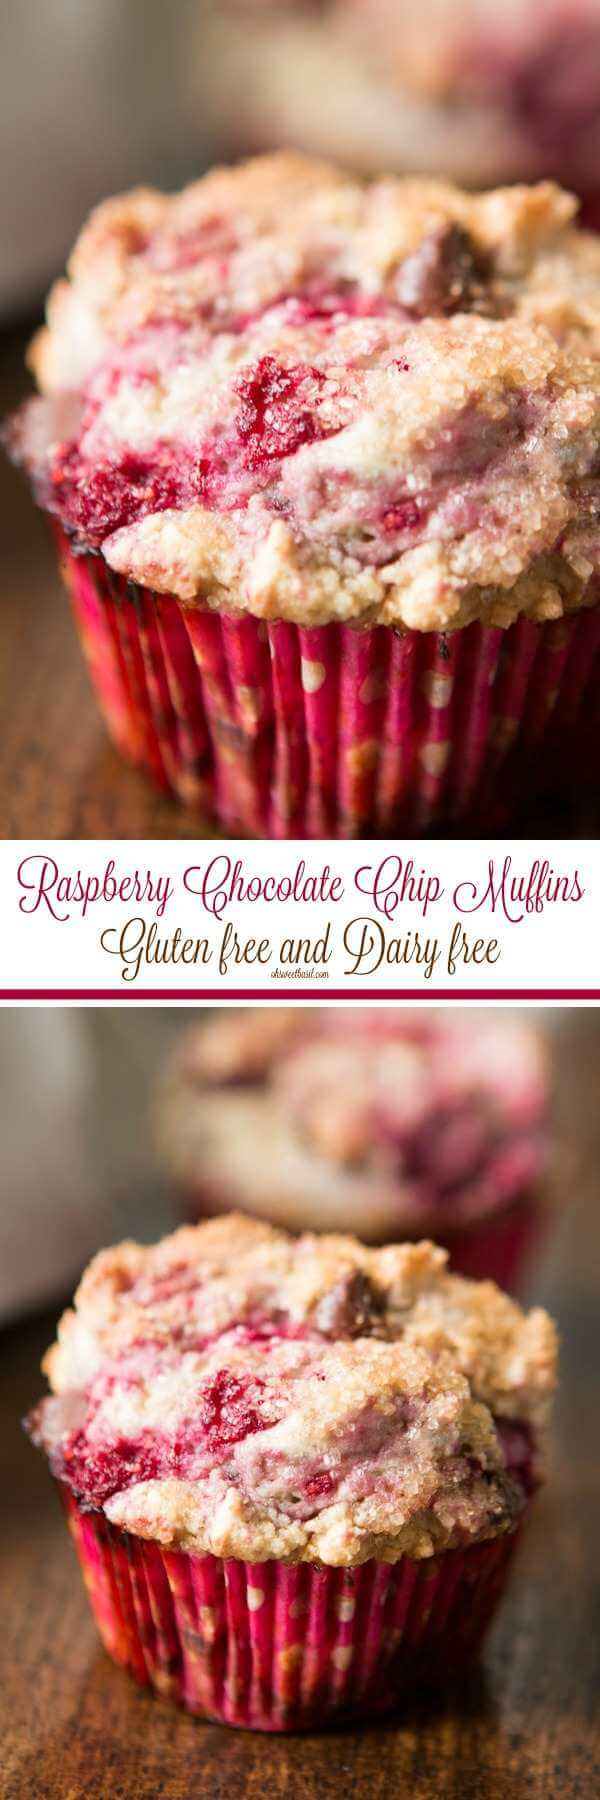 We love these gluten free dairy free raspberry chocolate chip muffins but you can make them with flour and butter too! ohsweetbasil.com